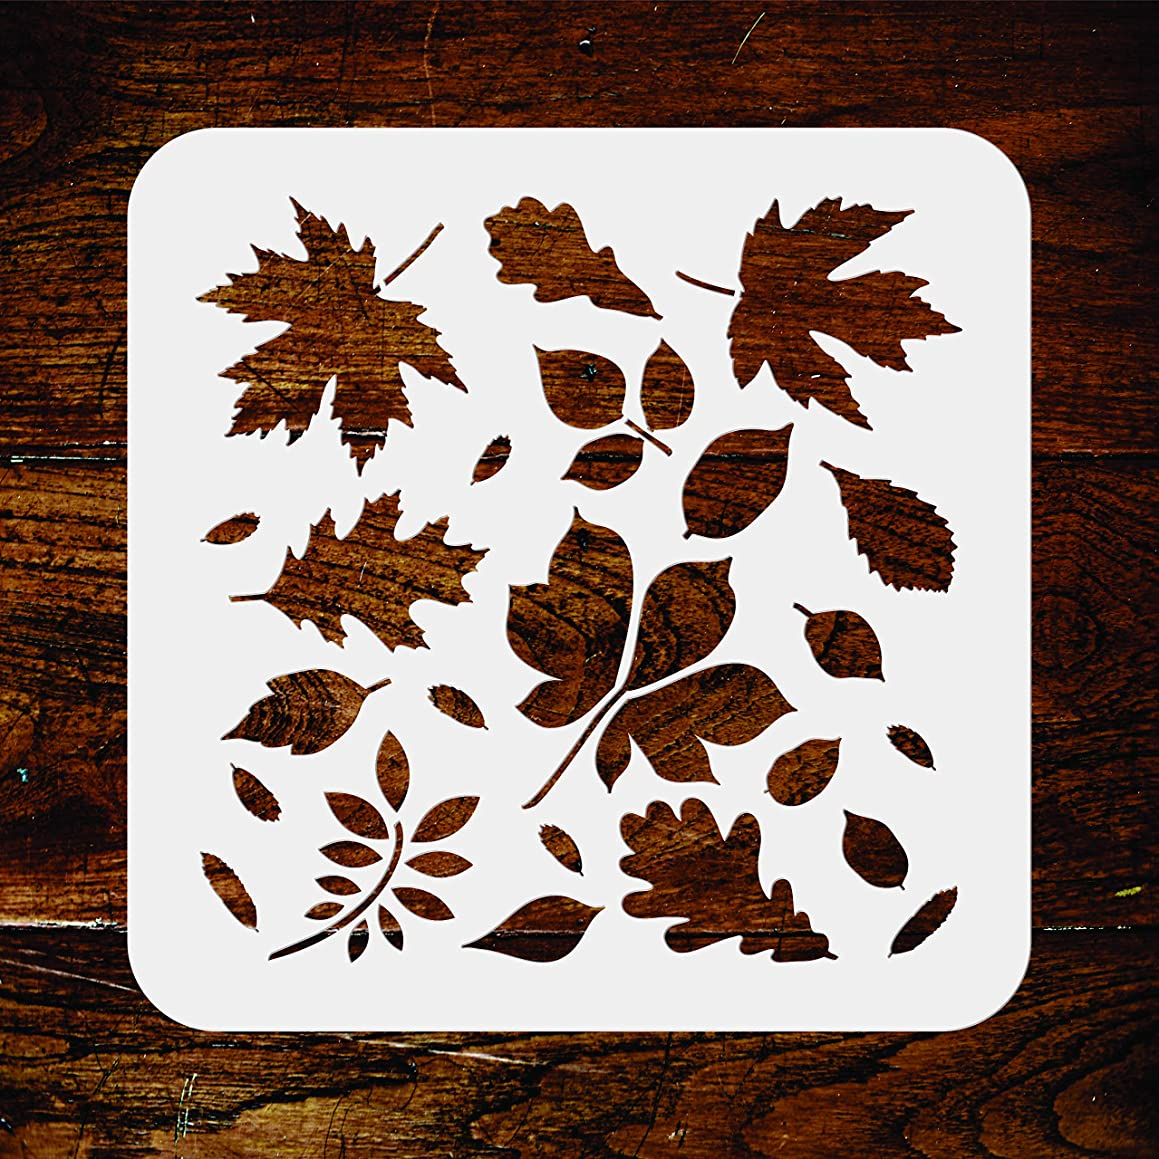 Leaves Stencil - 6.5 x 6.5 inch - Reusable Autumn Fall Leaf Flora Wall Stencil Template - Use on Paper Projects Scrapbook Journal Walls Floors Fabric Furniture Glass Wood etc.